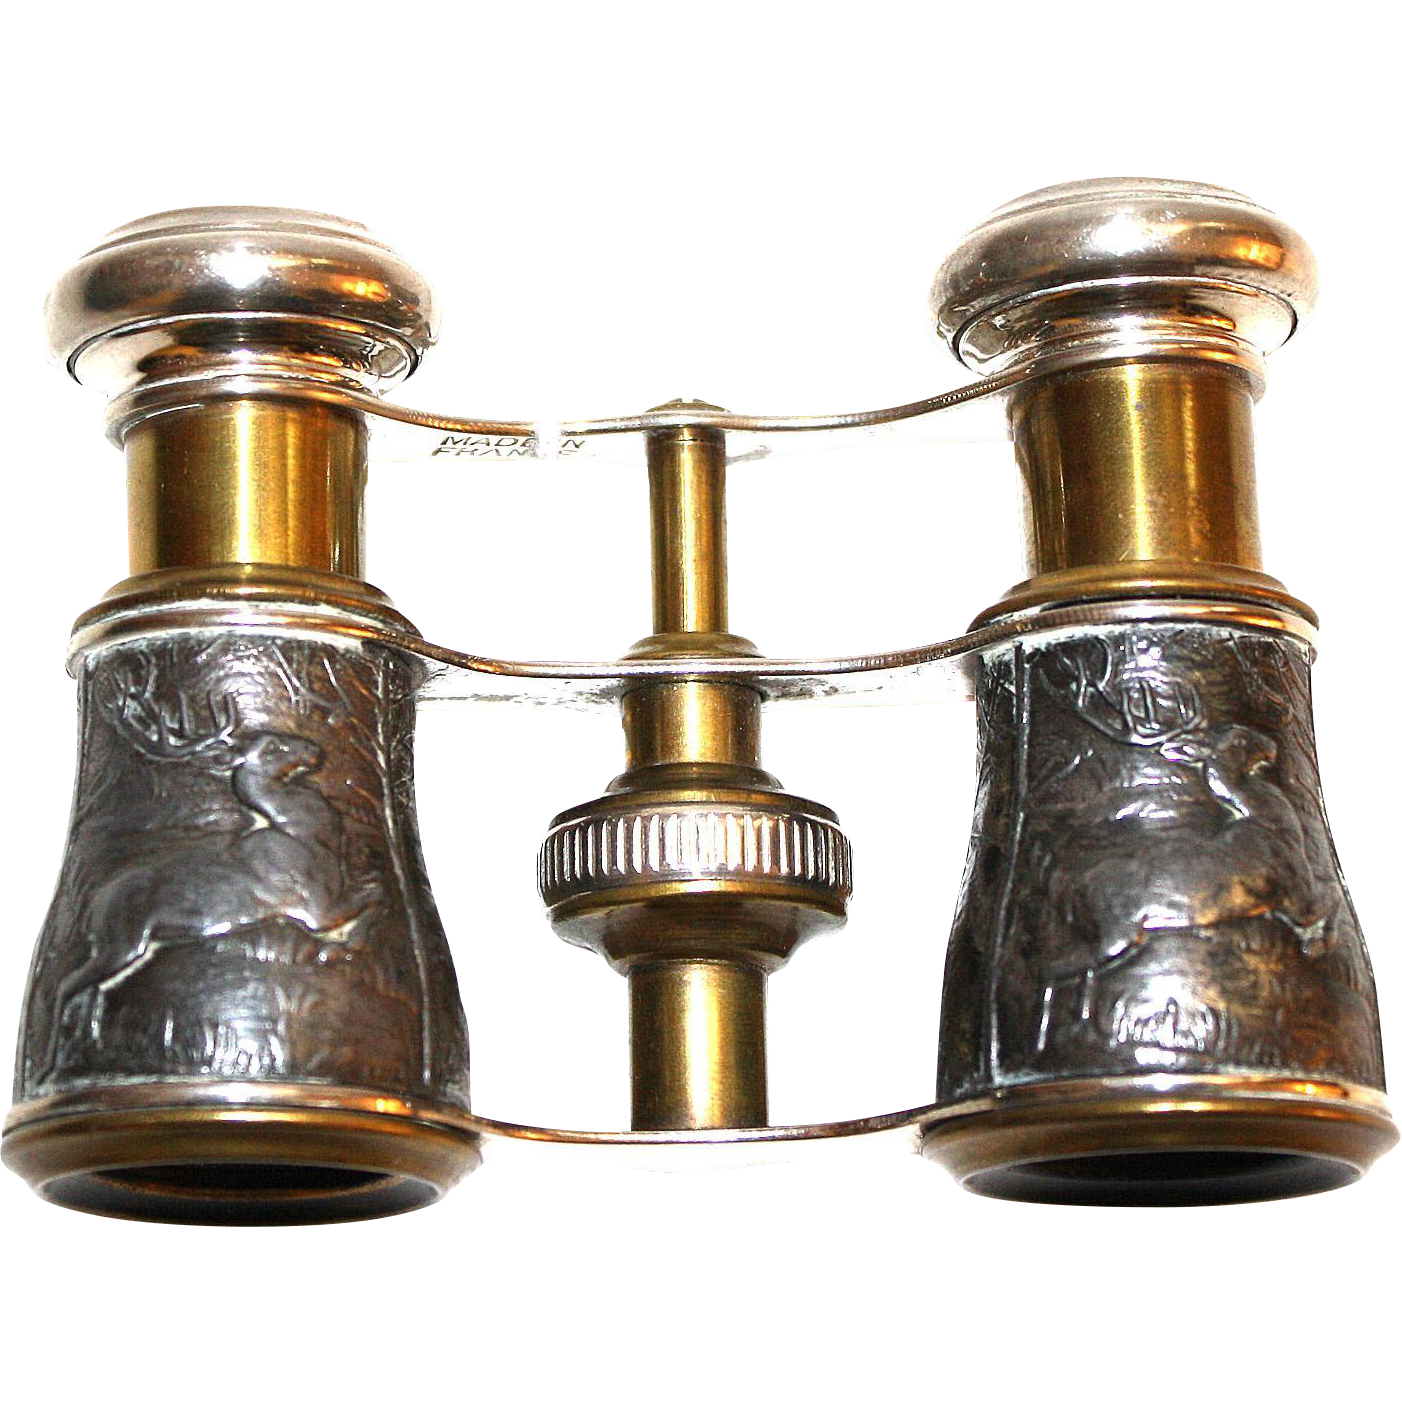 Vintage French Opera Glasses with Stag and Hound Design